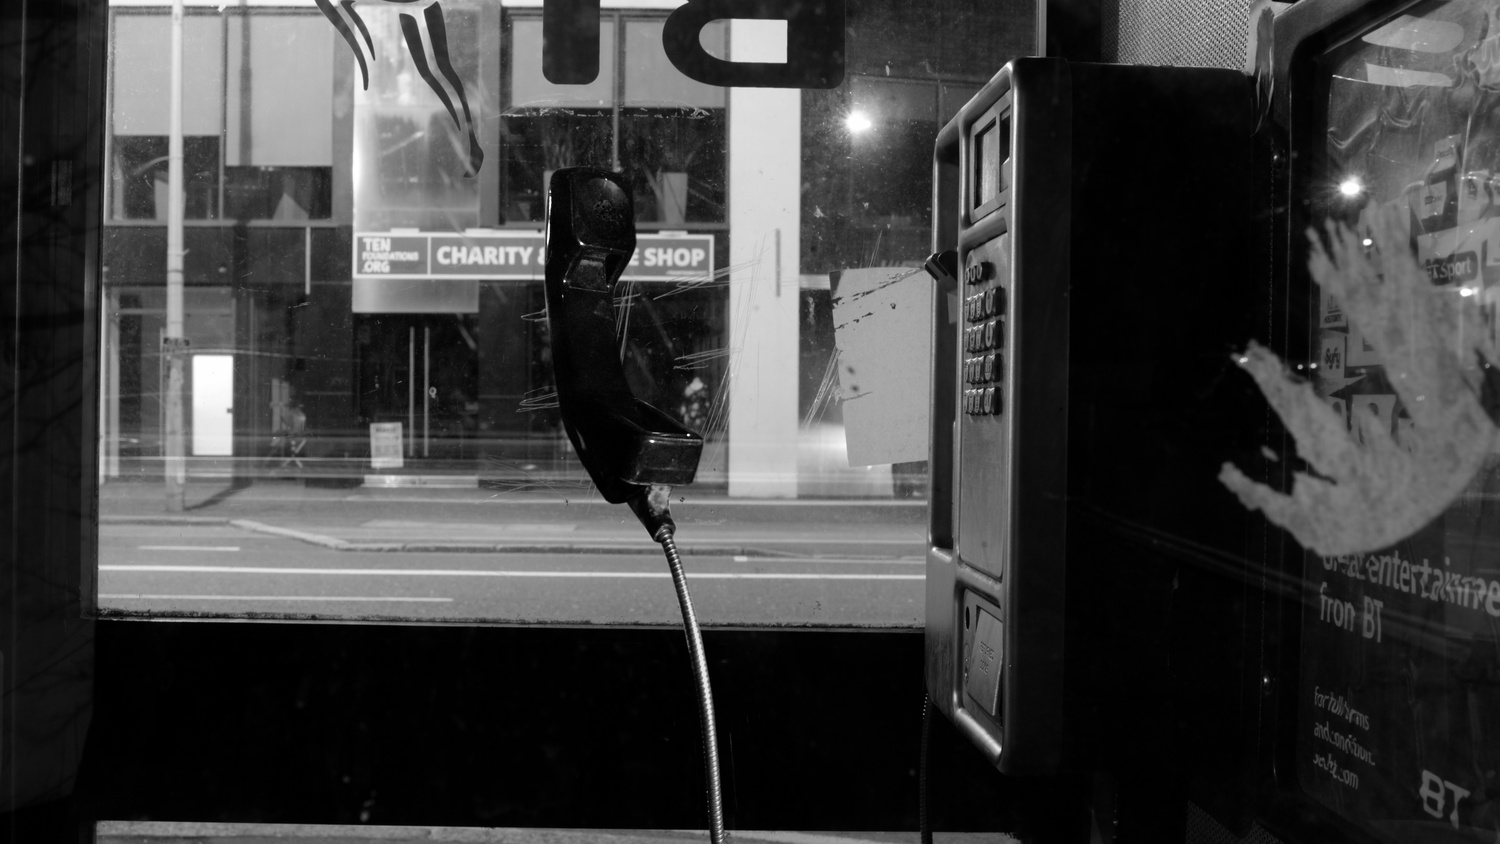 The Empty Phonebooth by Timothy McGlinchey